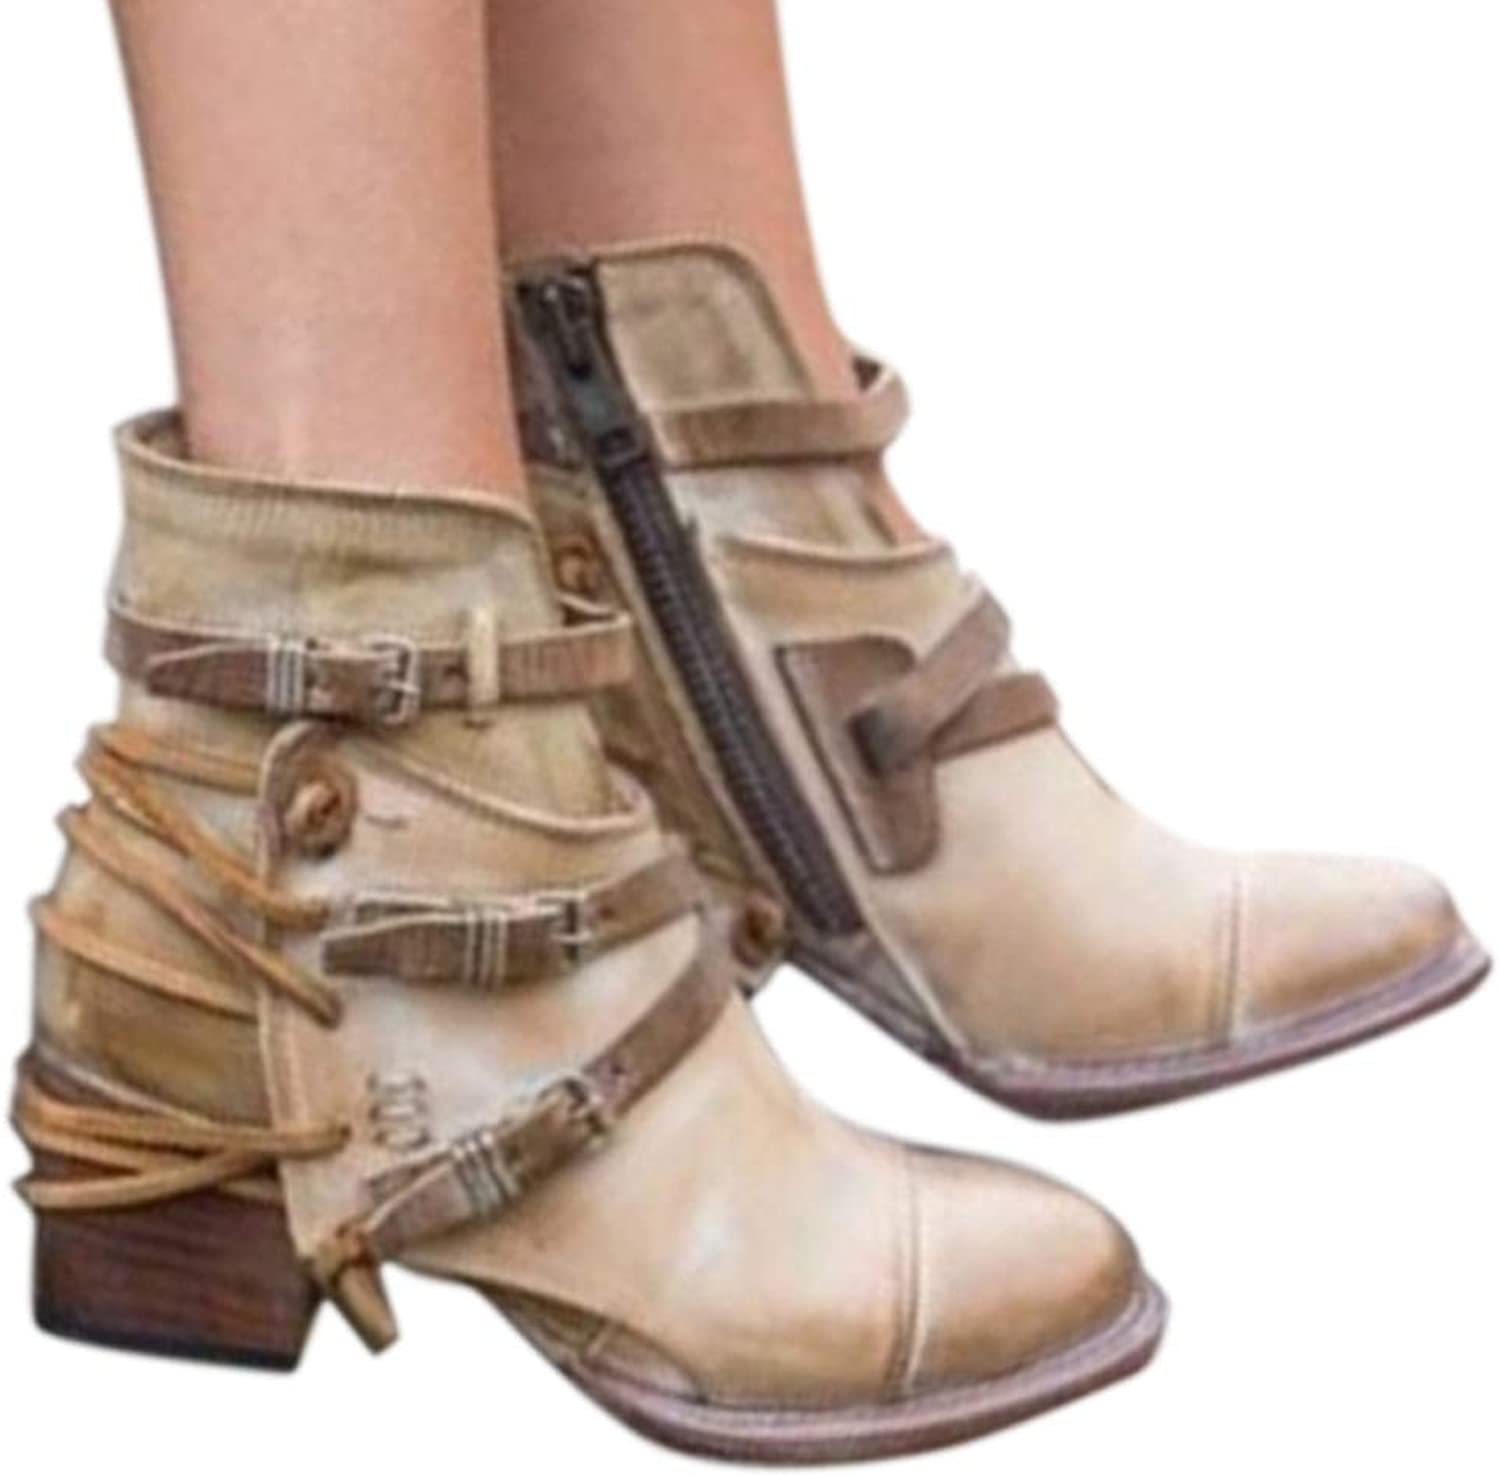 Vintage Ankle Boots for Women Platform Low Heels Female shoes Buckle Short Boot Spike Heels Round Toe Boot